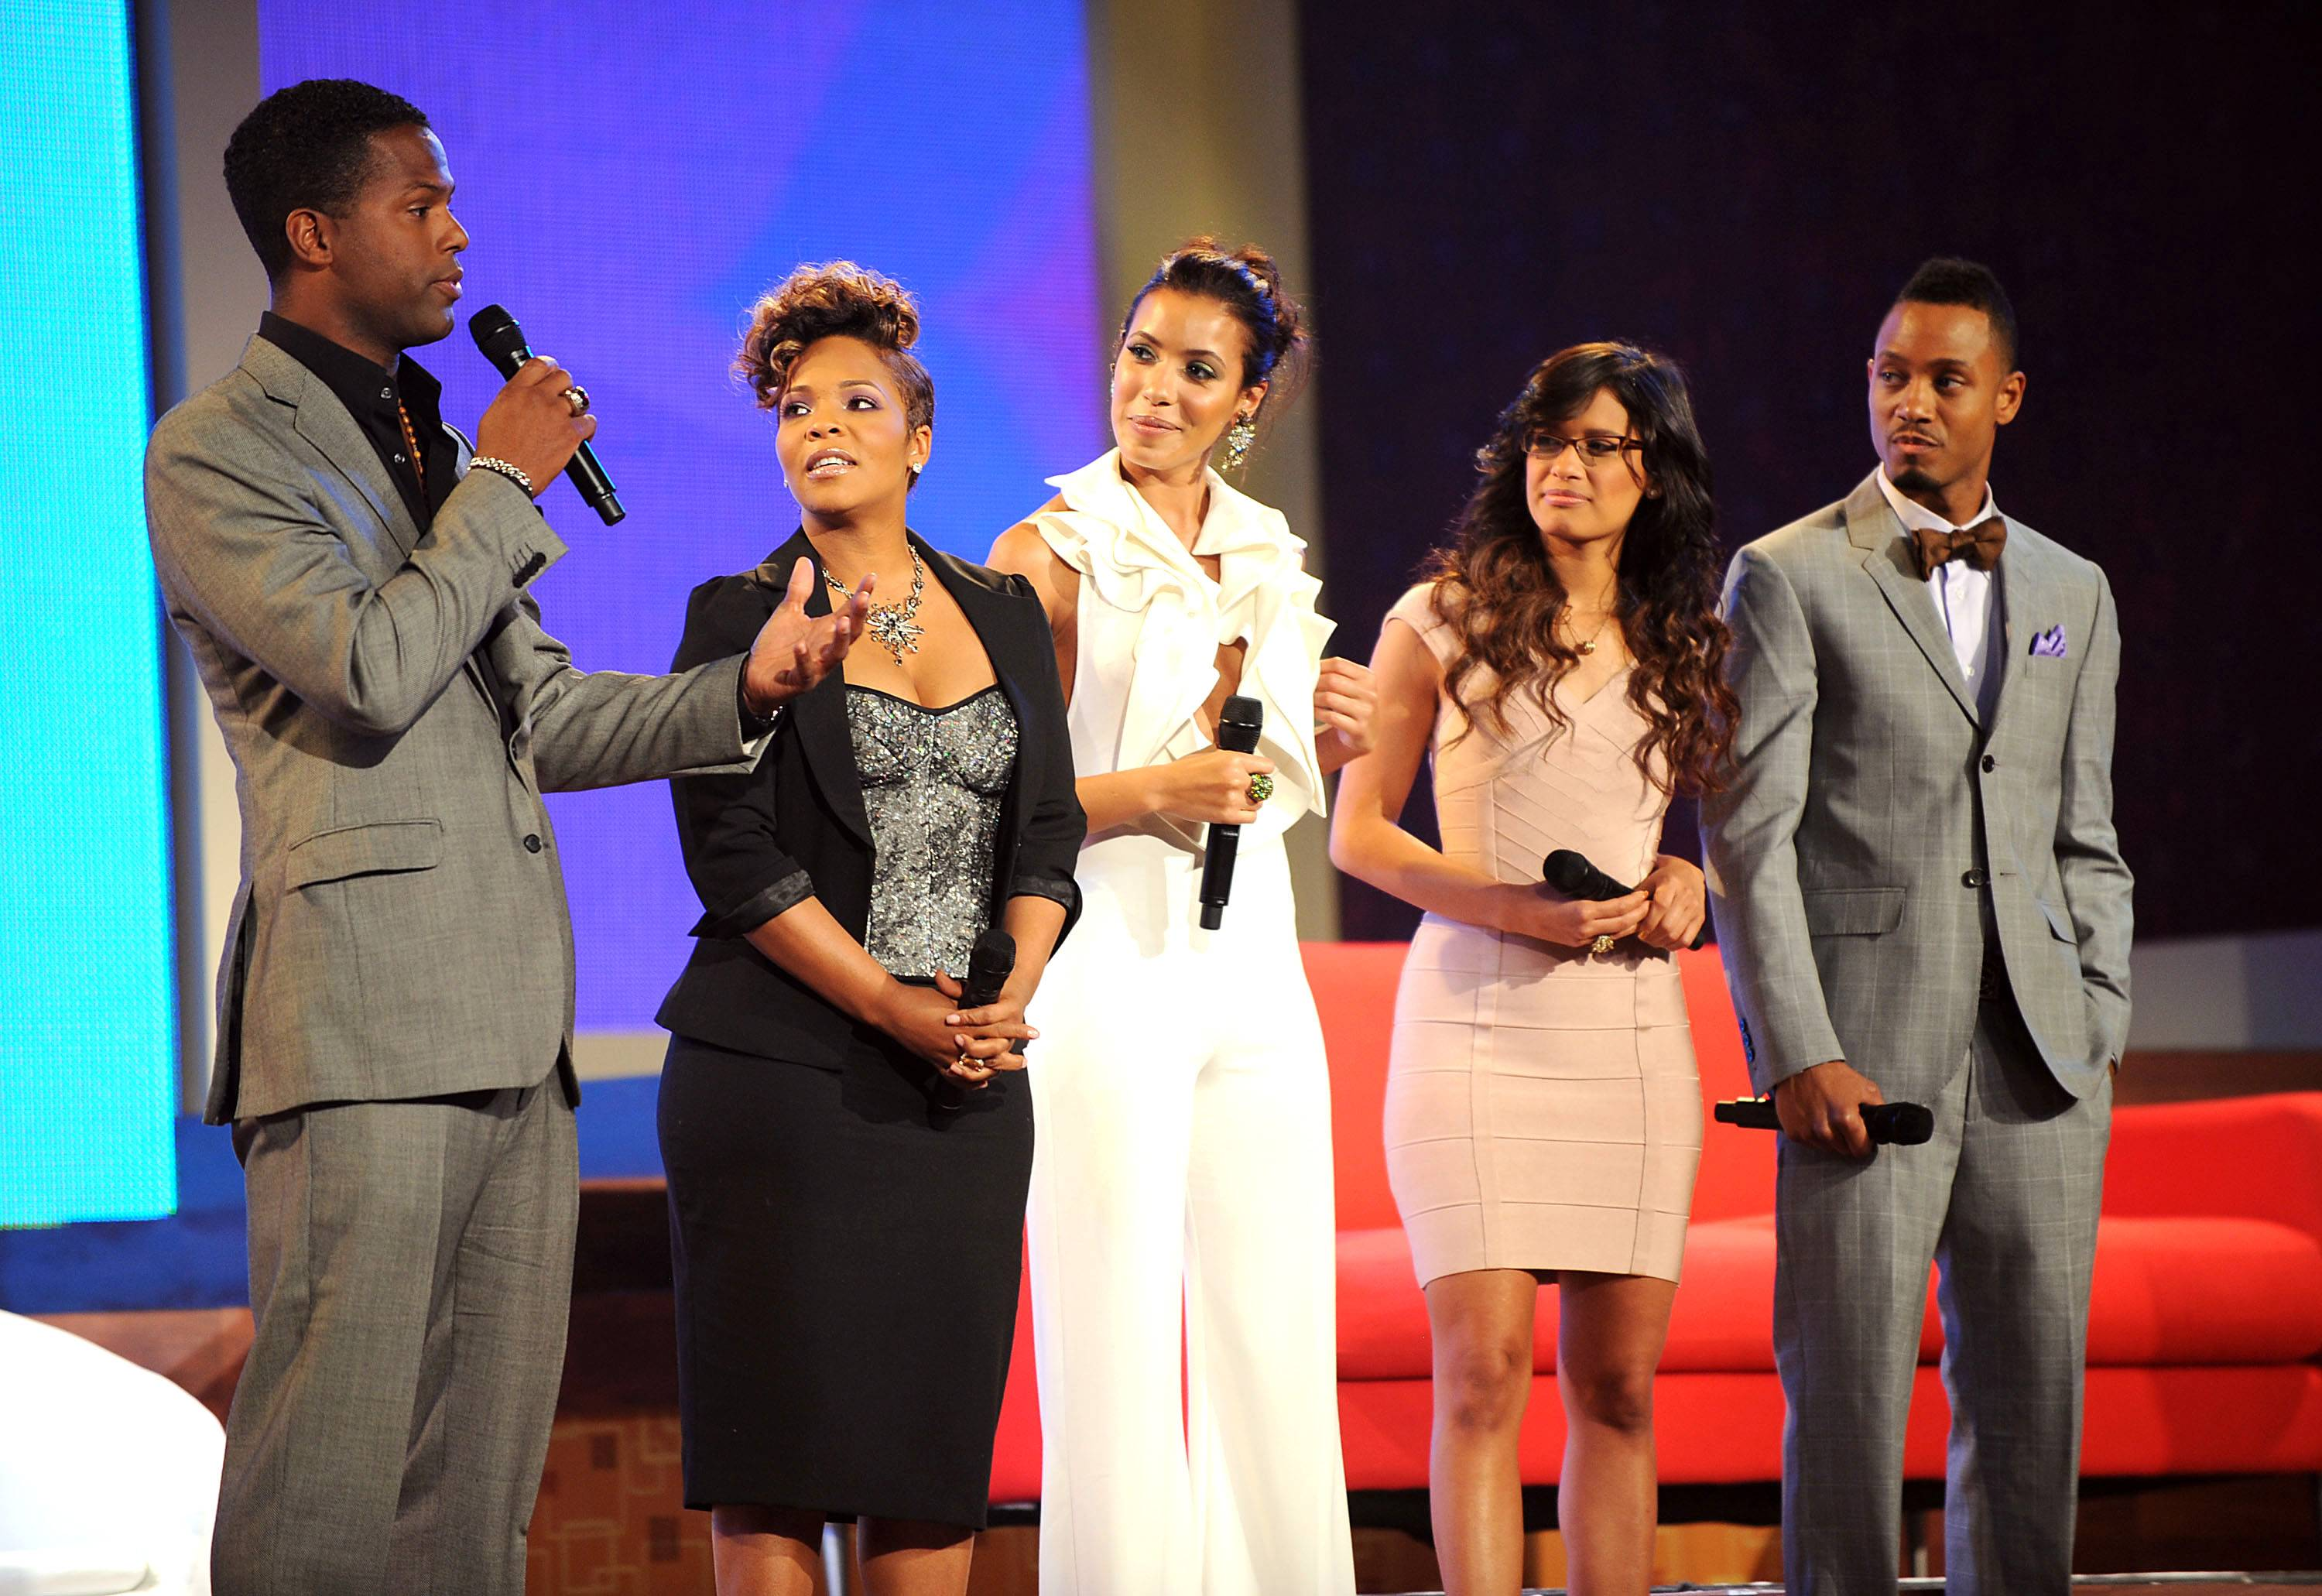 Coming Home - Free returned to BET again in 2010 and took part in two specials: 106 & Park: 10 Years & Counting and 106 & Park: The Celebration, 10 Years Live!(Photo by Scott Gries/PictureGroup)